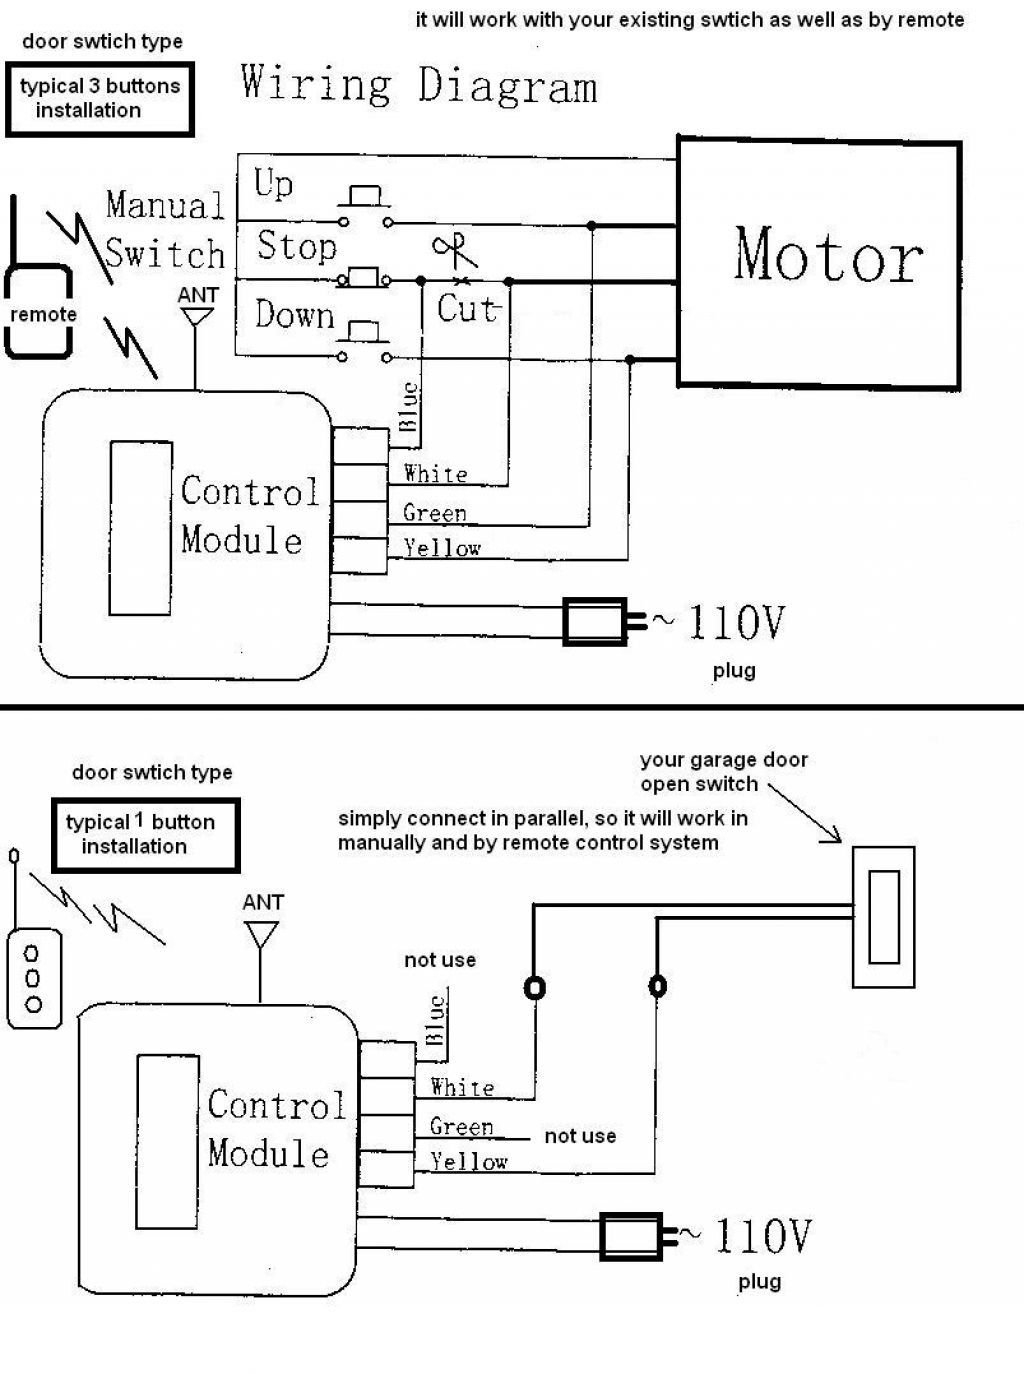 Grill Ignitor Wiring Diagram Lynx Parts Ignition Installation Garage - Grill Ignitor Wiring Diagram